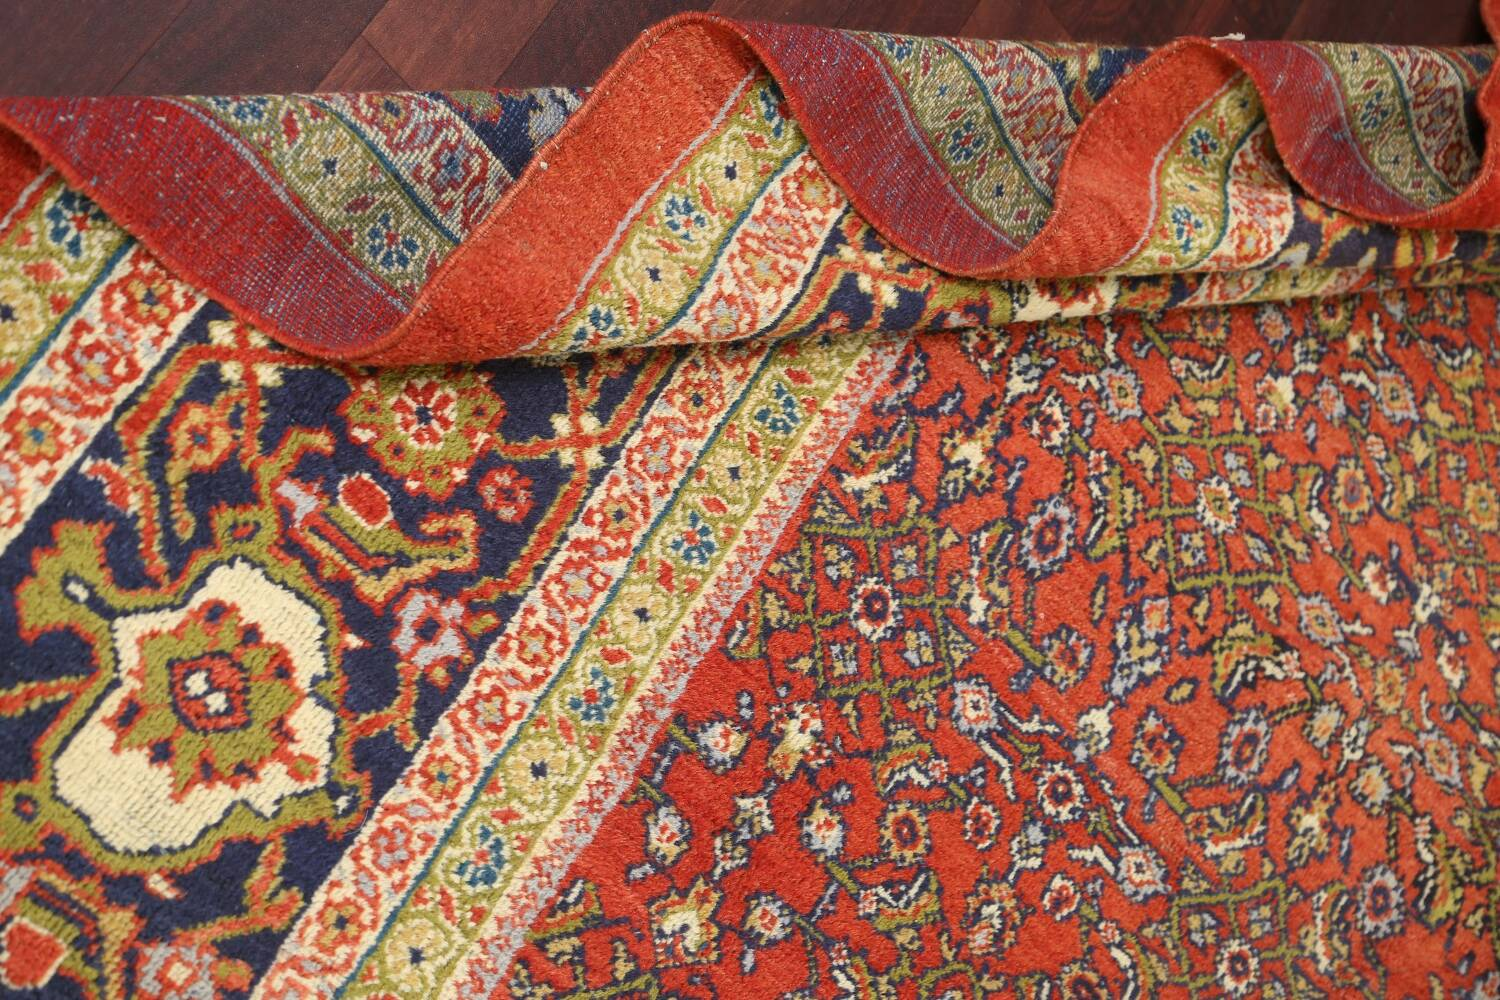 Pre-1900 Antique Vegetable Dye Sultanabad Persian Rug 15x22 image 17